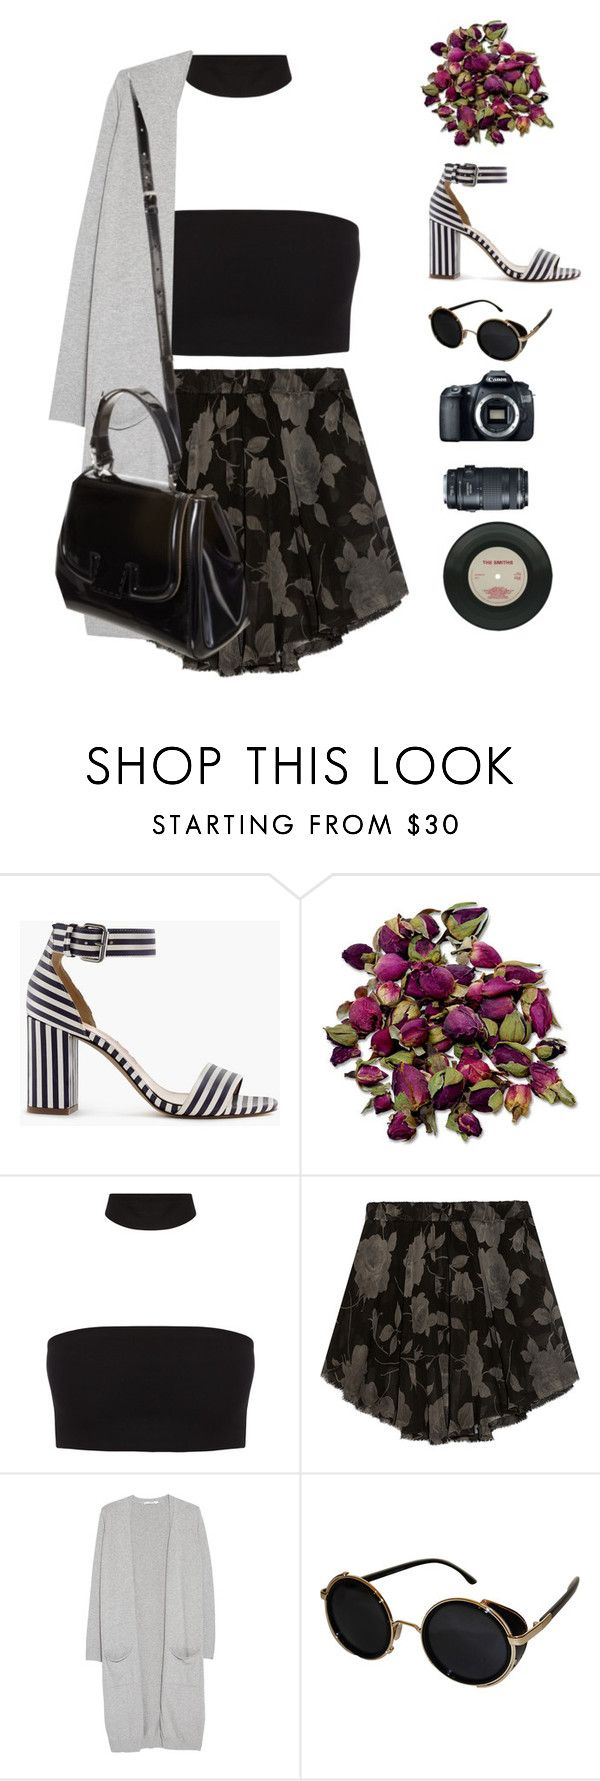 """""""Heart Out   The 1975"""" by gre17 ❤ liked on Polyvore featuring J.Crew, Enza Costa, MANGO, Topshop, Fendi and Eos"""